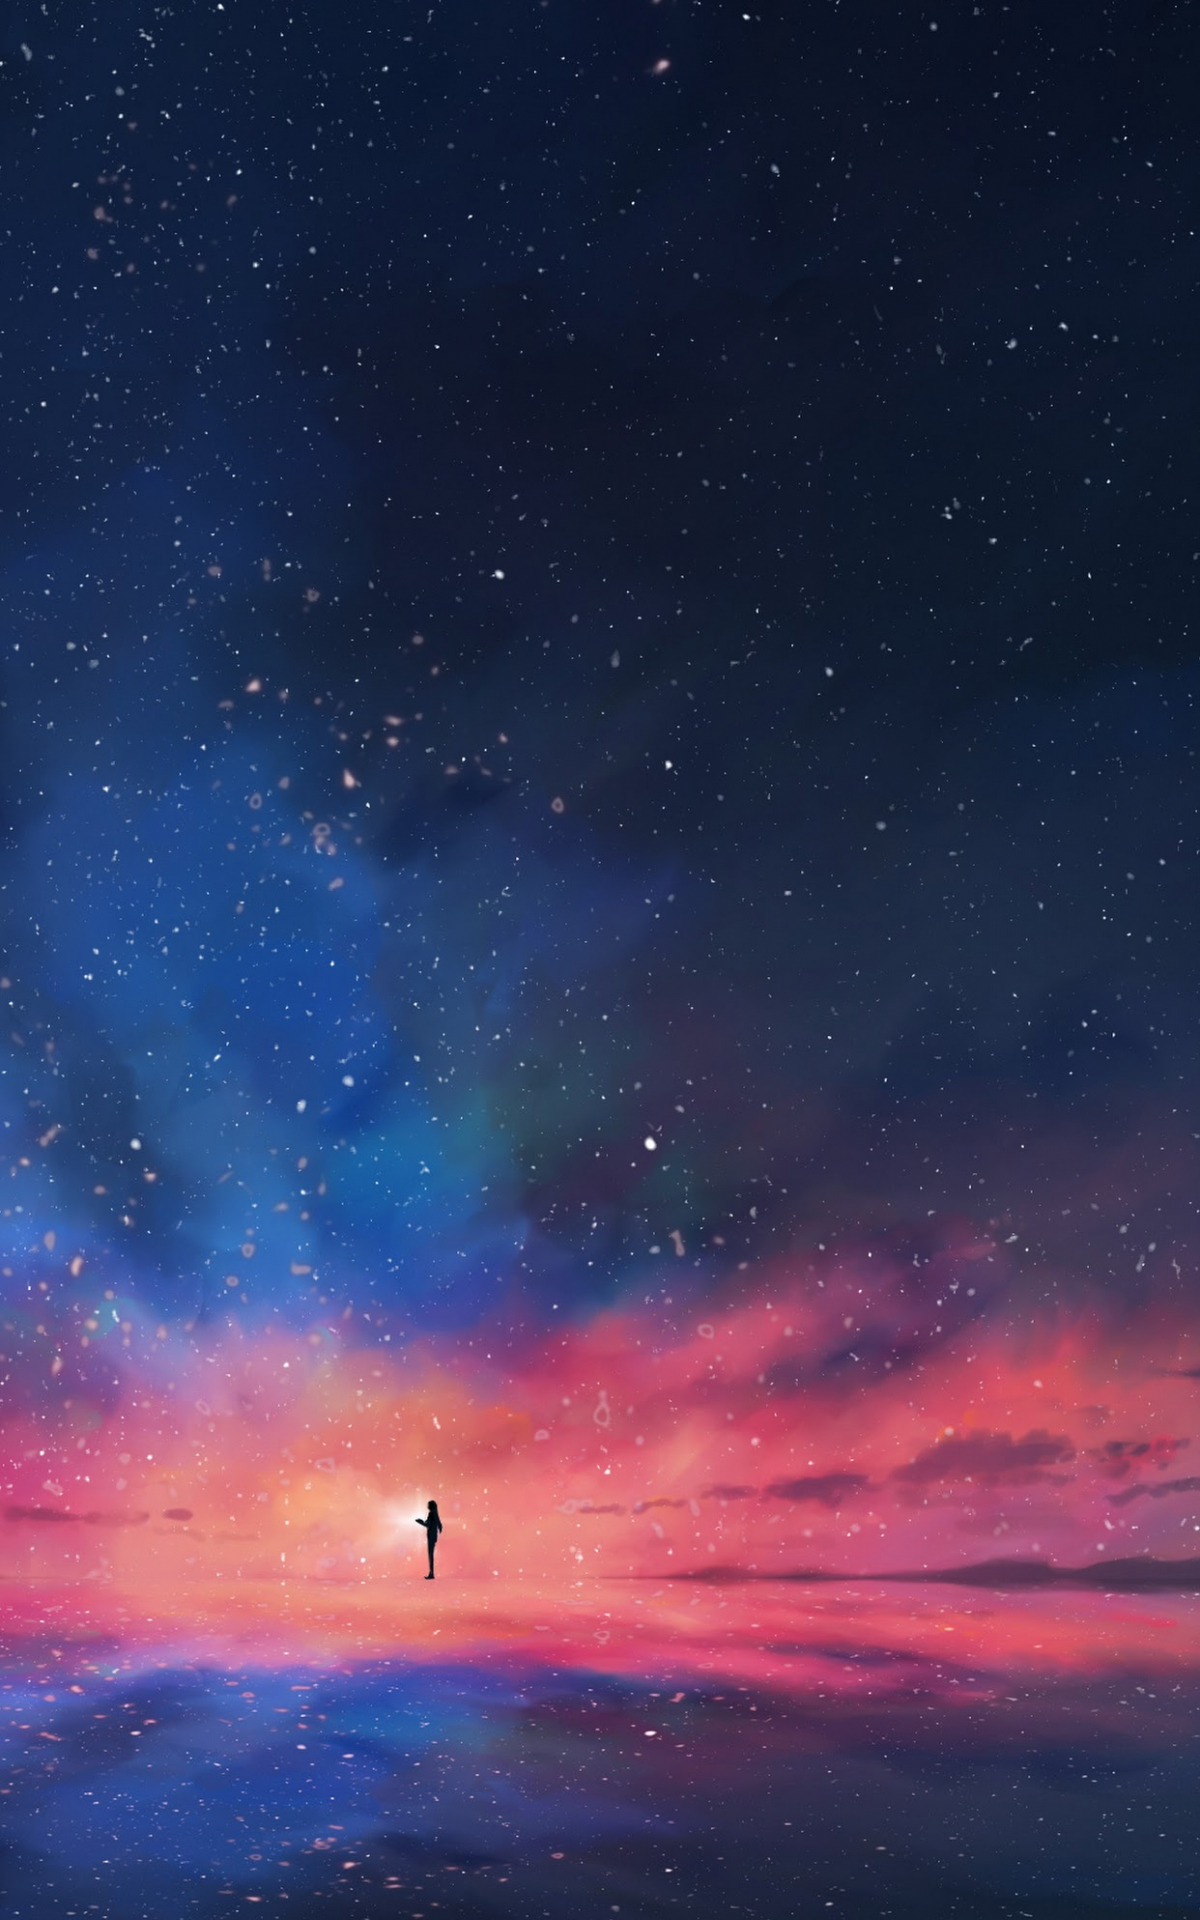 Free Download Anime Night Sky Stars Horizon Scenery 4k Wallpaper 92 1242x2688 For Your Desktop Mobile Tablet Explore 55 Anime Iphone 11 4k Wallpapers Anime Iphone 11 4k Wallpapers